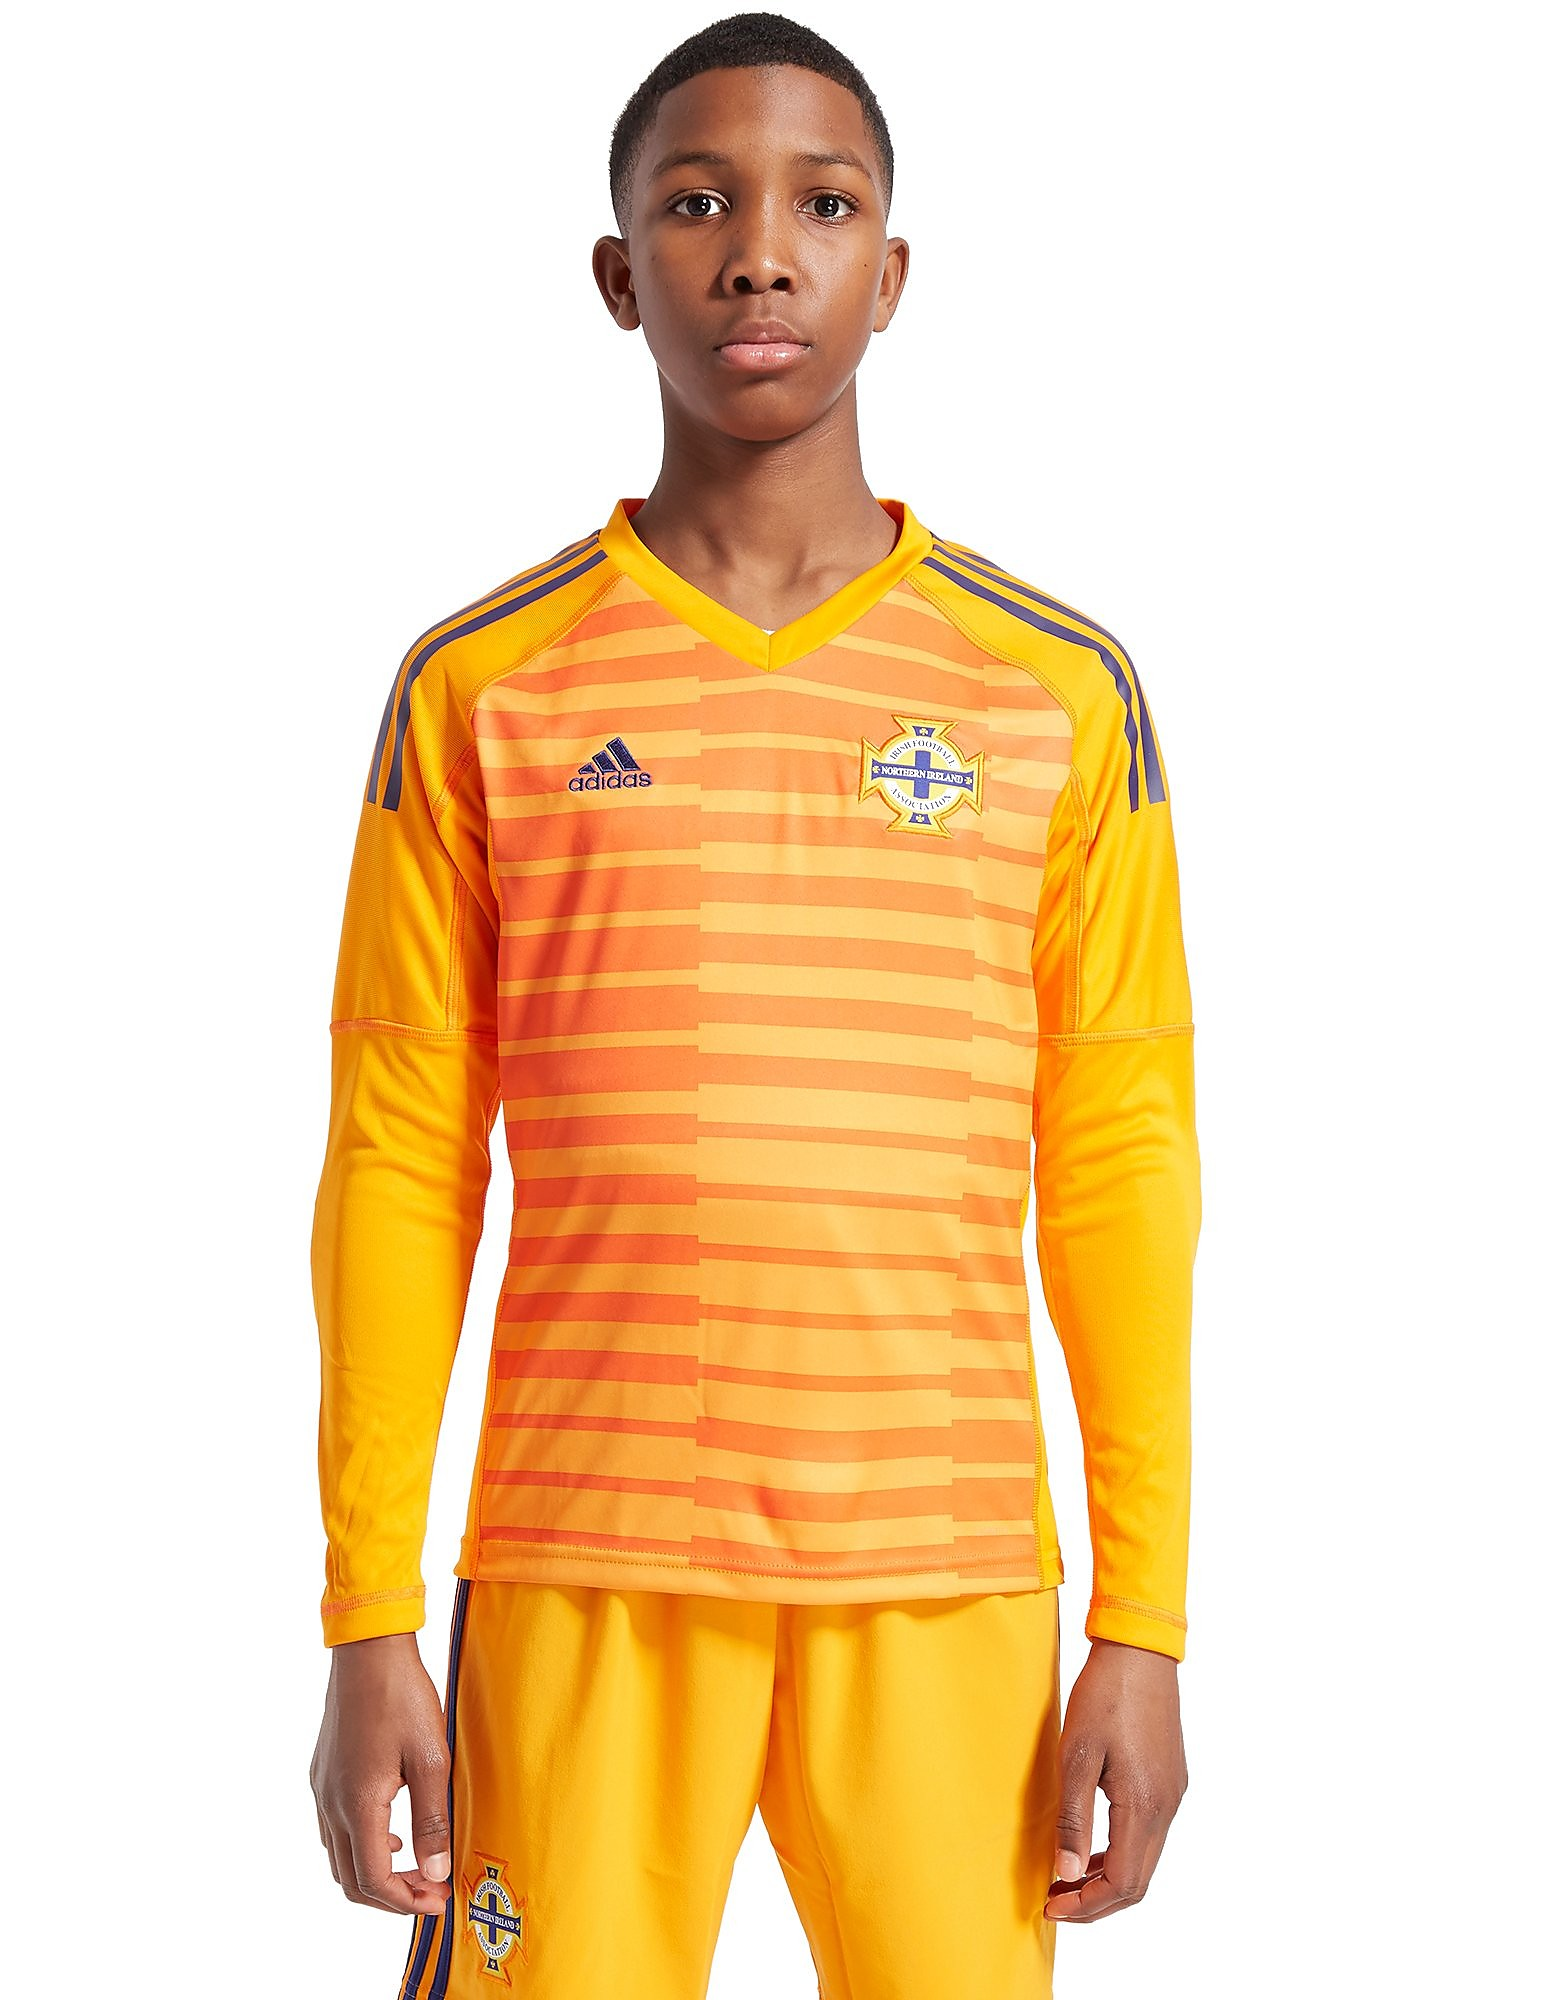 adidas Northern Ireland 2018 Home Goal Keeper Shirt Jnr